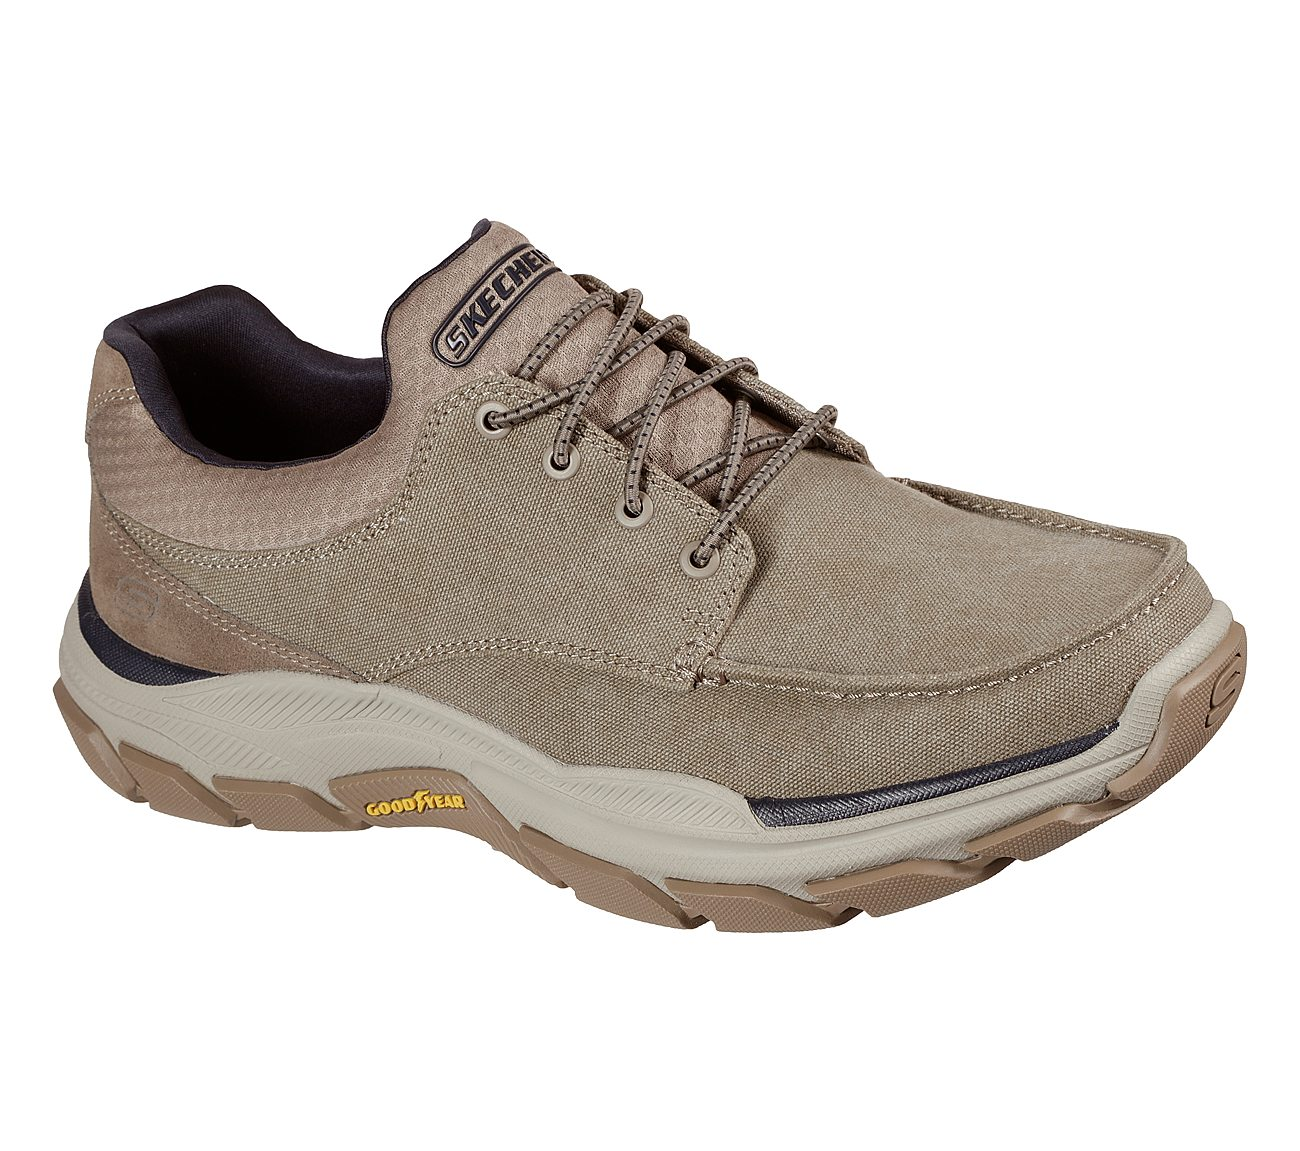 Buy SKECHERS Relaxed Fit RespectedLoleto USA Casuals Shoes